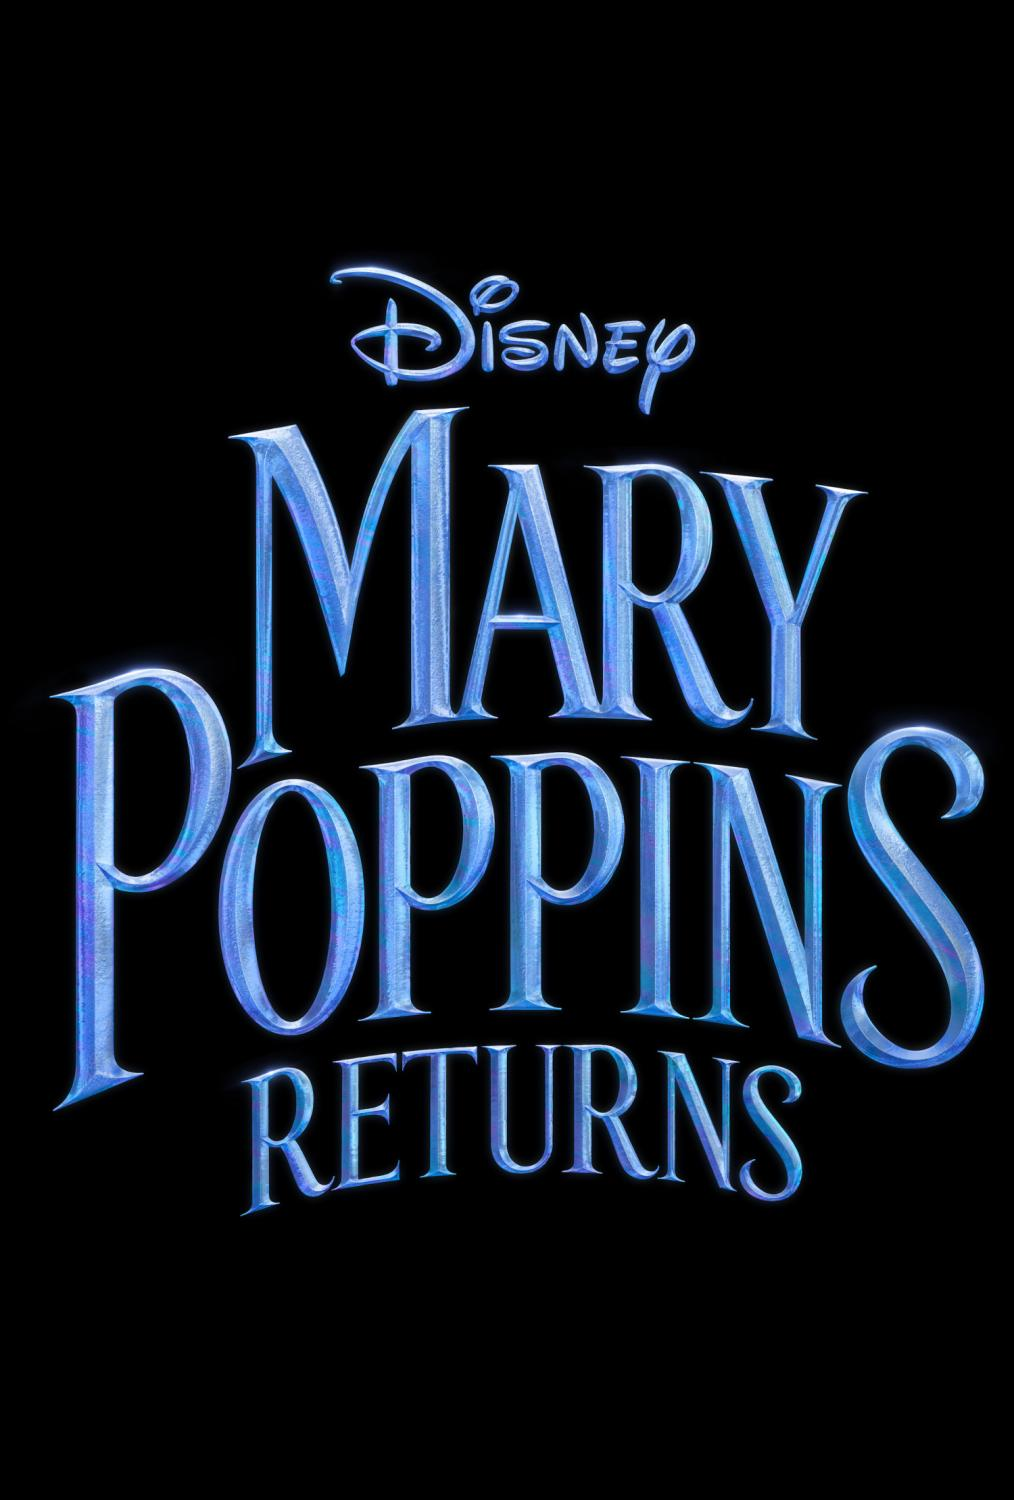 MaryPoppinsReturns5a77fa9722048.jpg